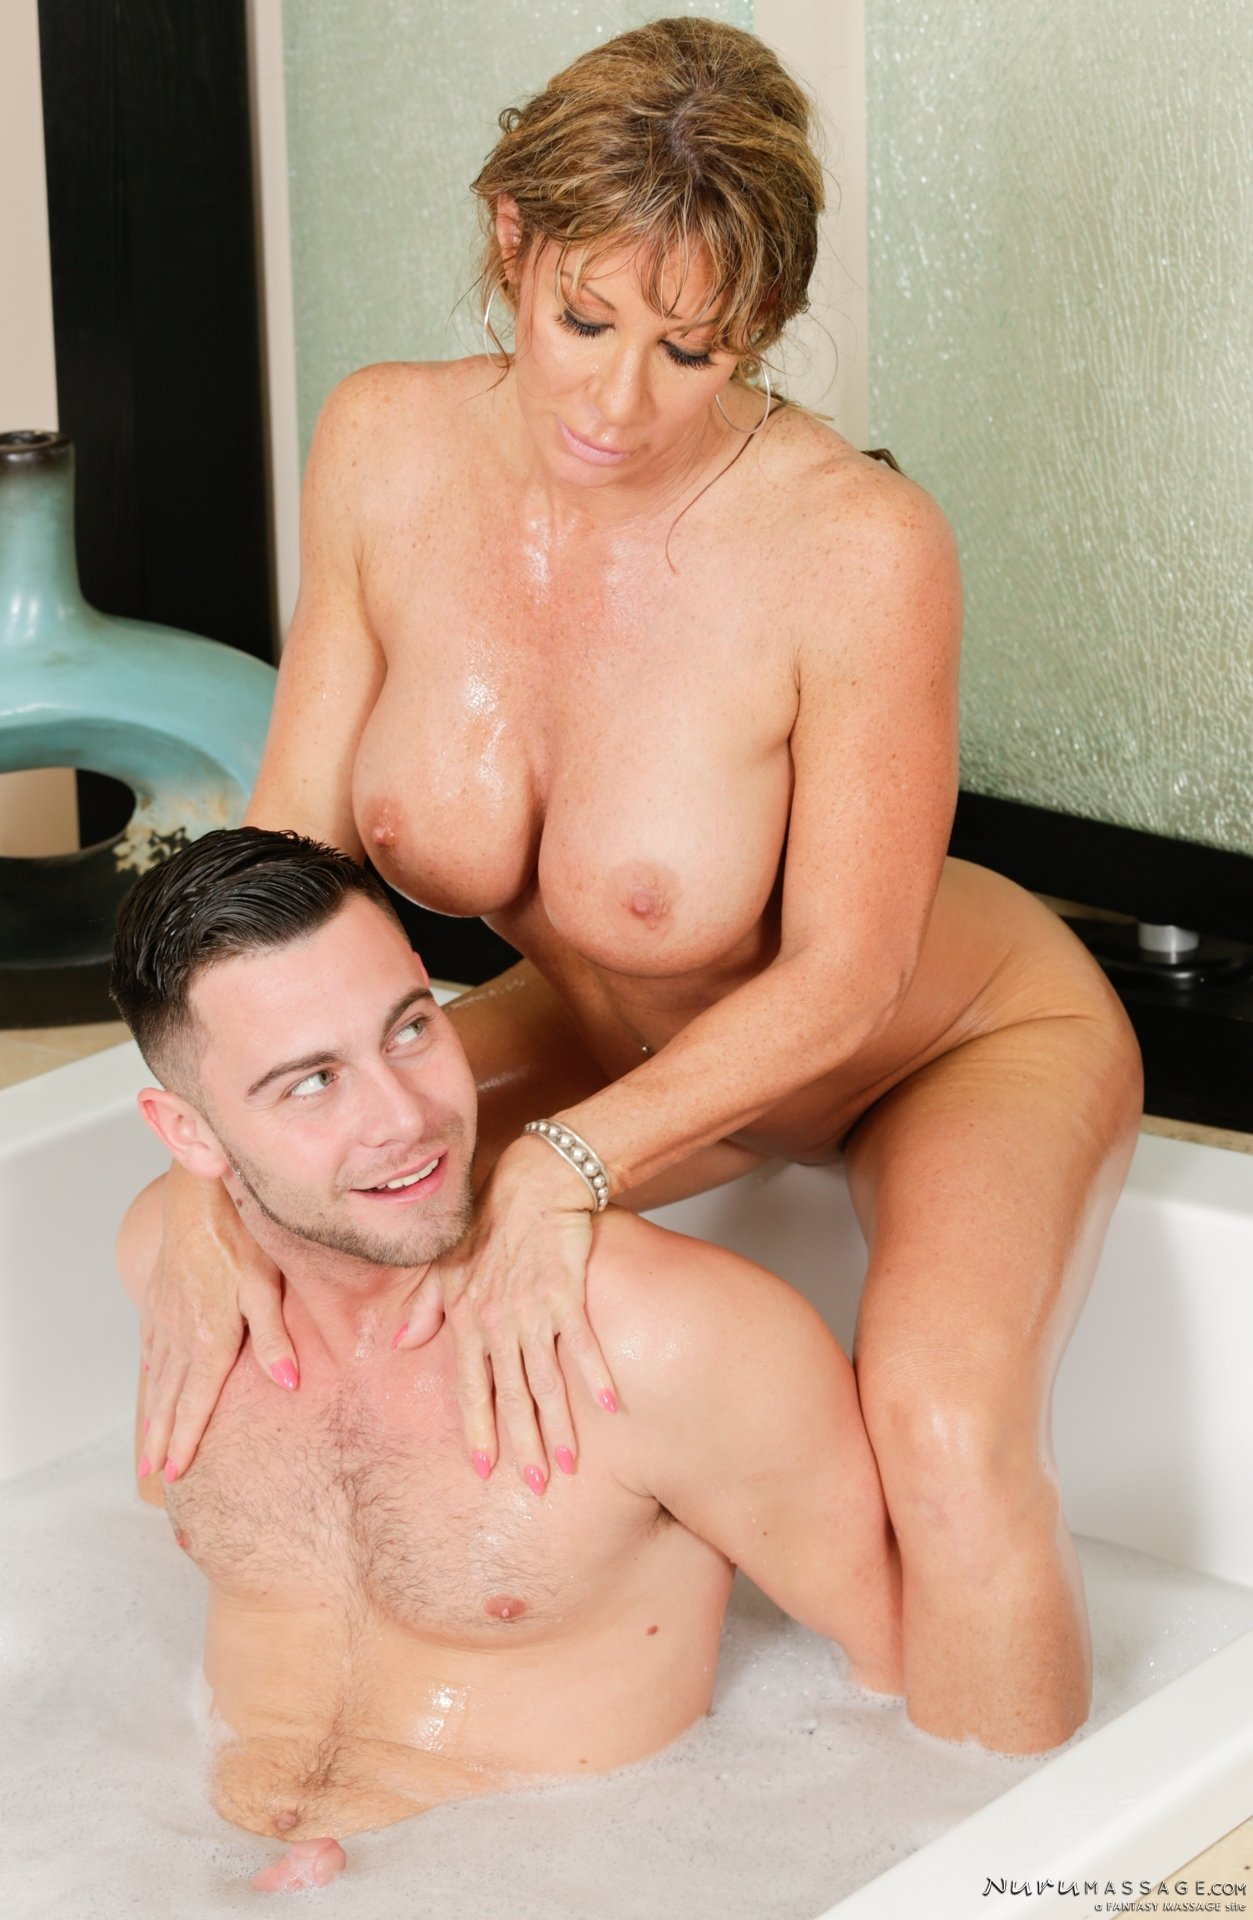 Free xxx rated sex